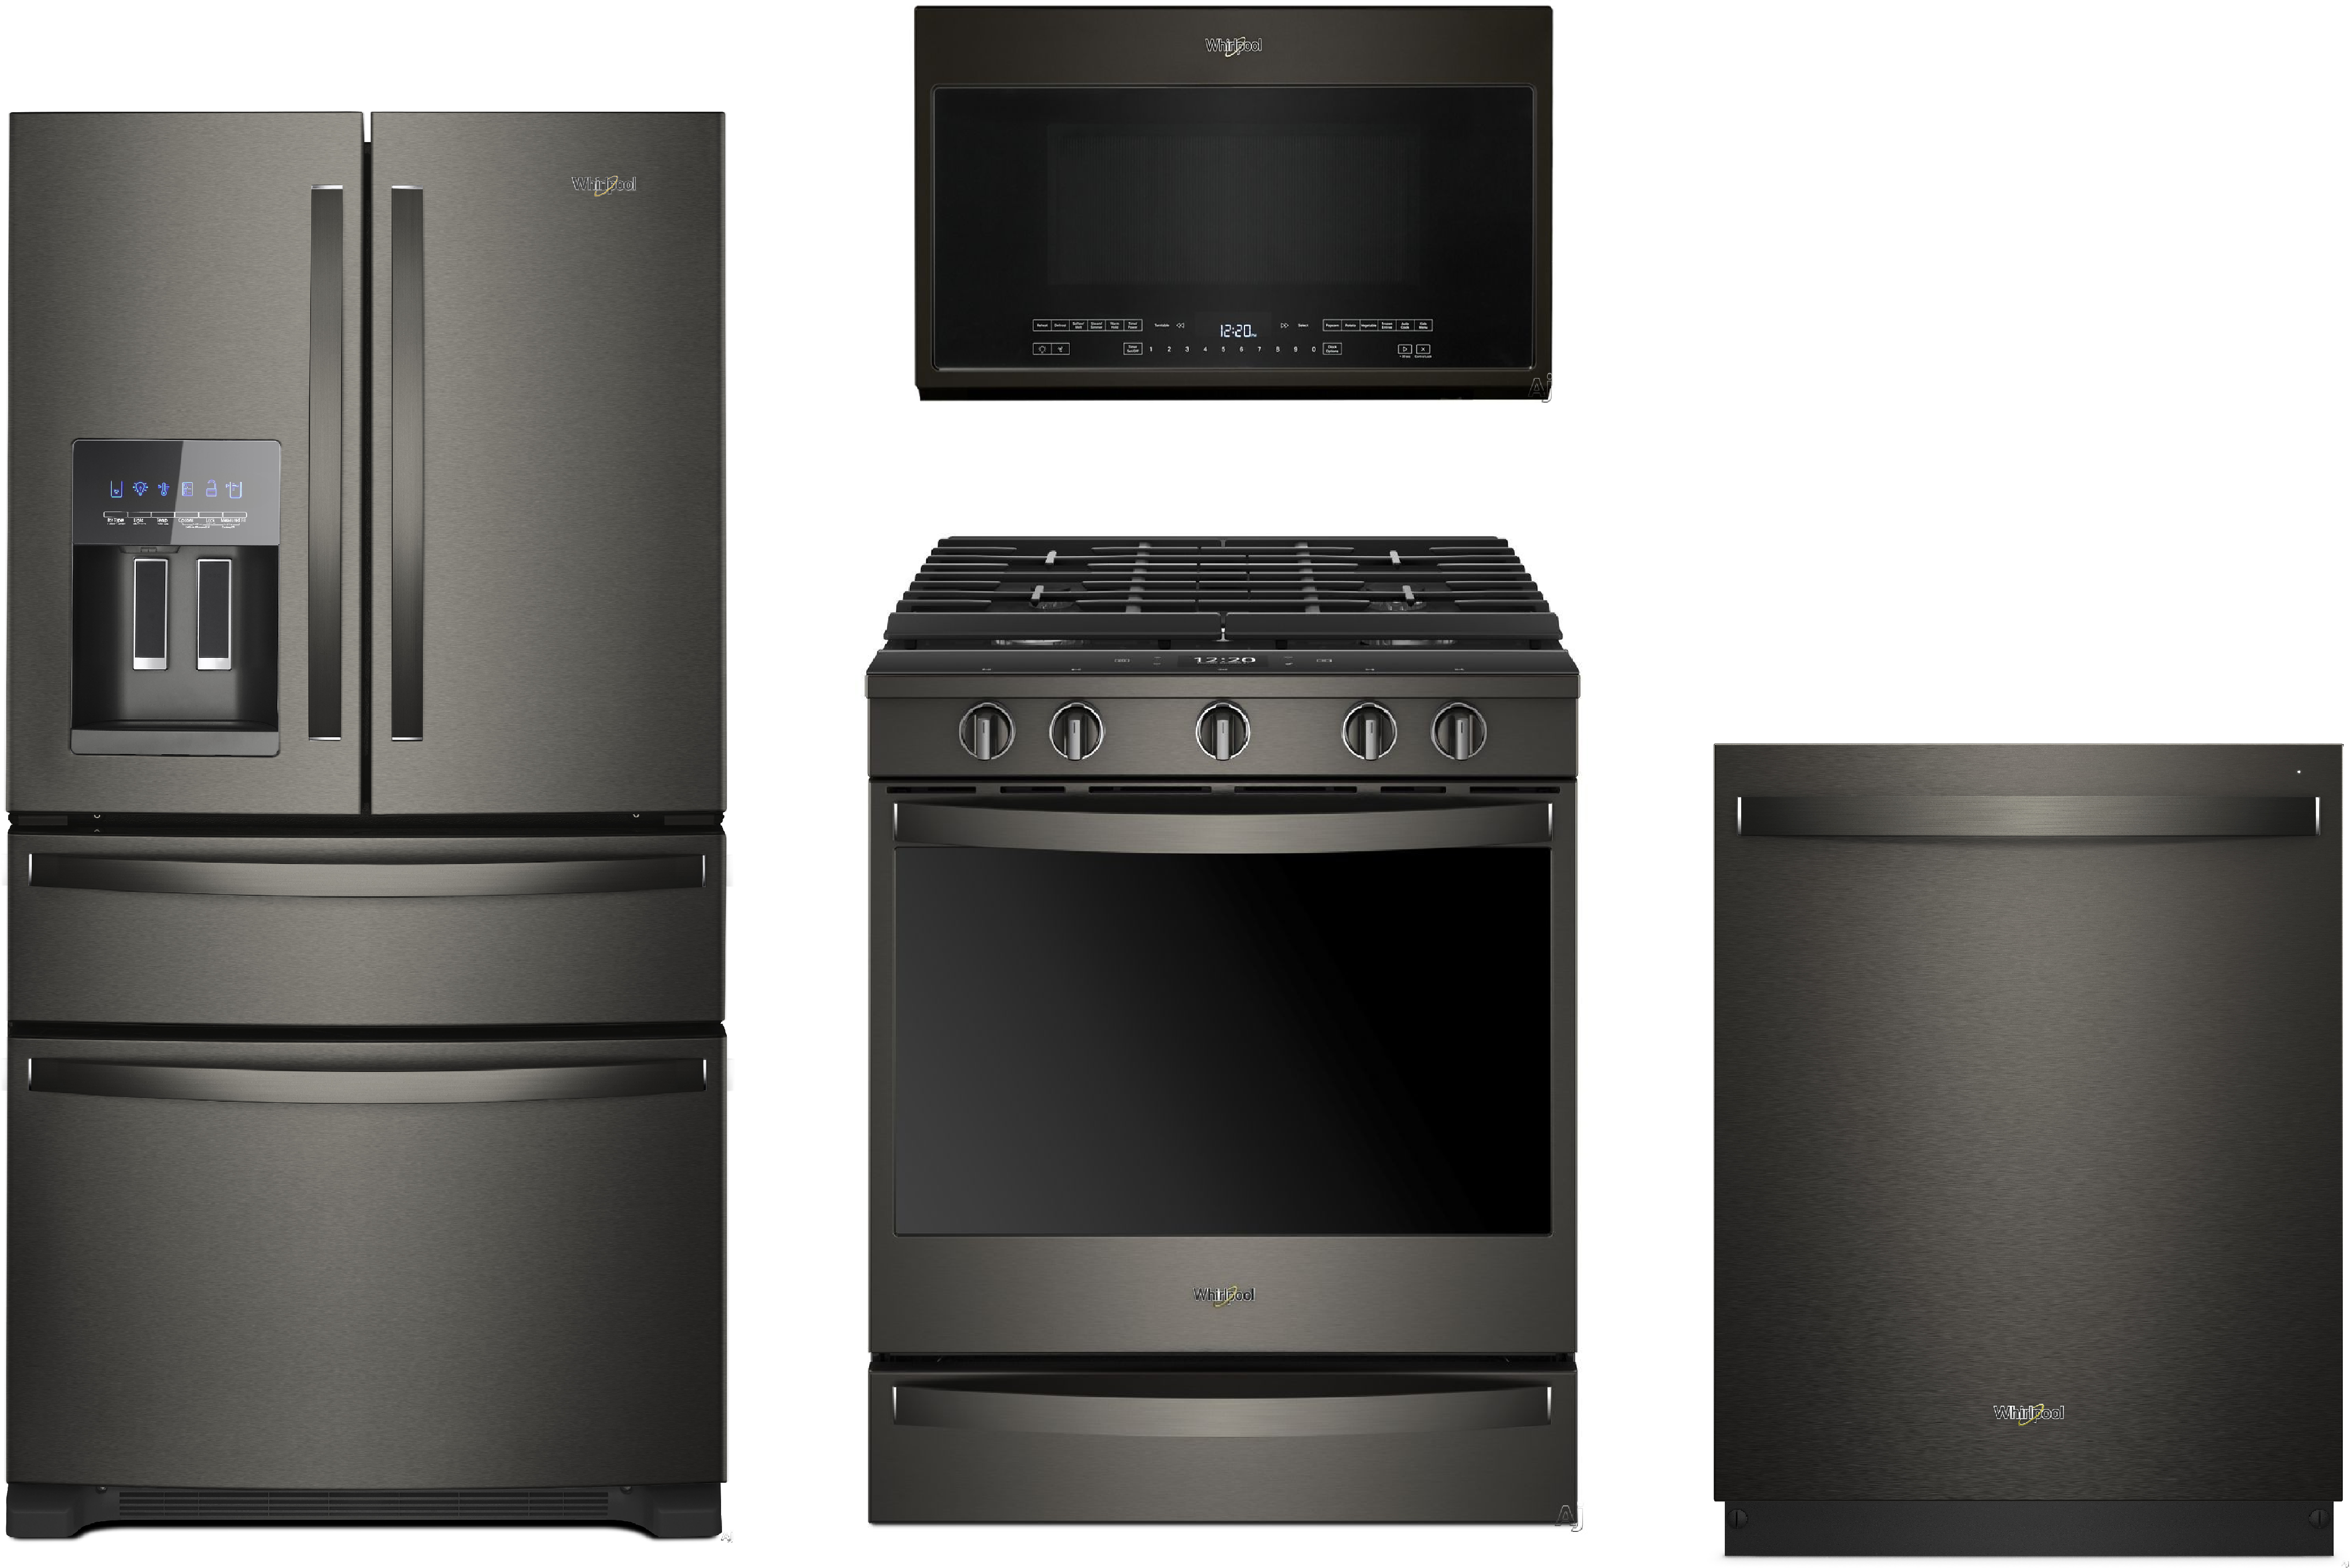 Whirlpool Wpreradwmw3220 4 Piece Kitchen Appliances Package With French Door Refrigerator Gas Range Dishwasher And Over The Range Microwave In Black Stainless Steel